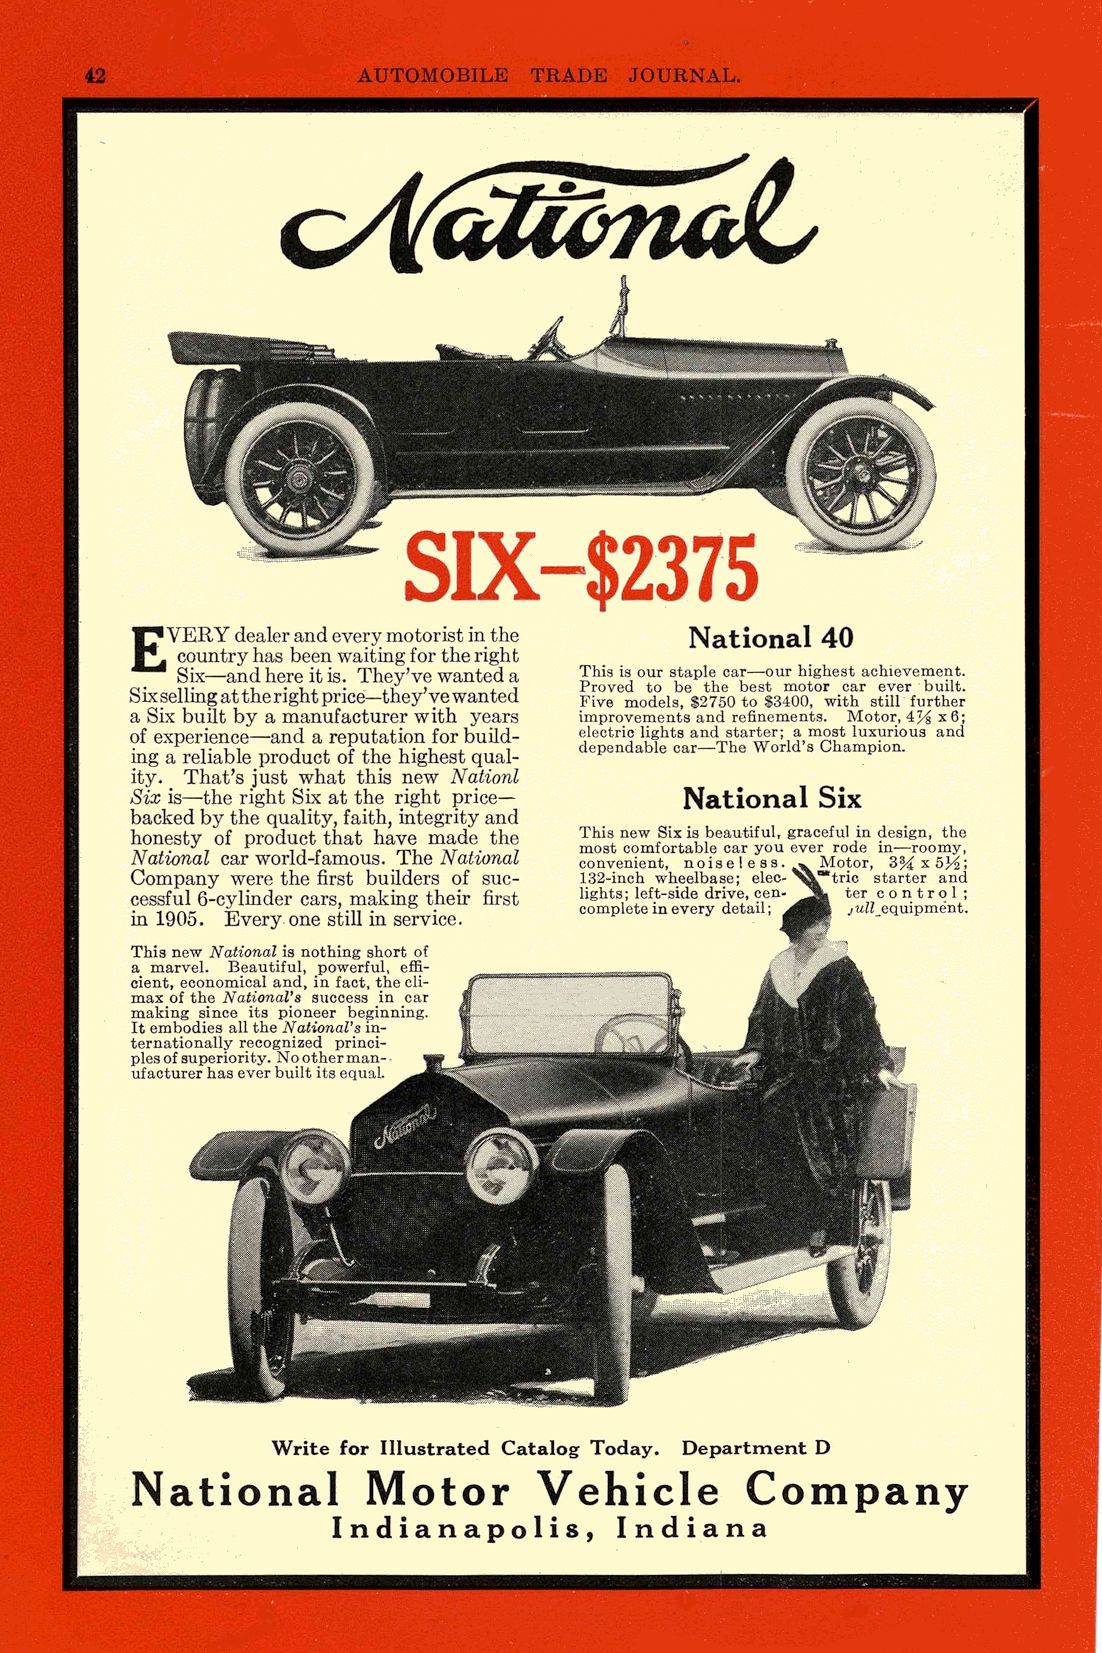 1914 NATIONAL National SIX — $2375 National Motor Vehicle Company Indianapolis, IND AUTOMOBILE TRADE JOURNAL 1914 6.5″x10″ page 42